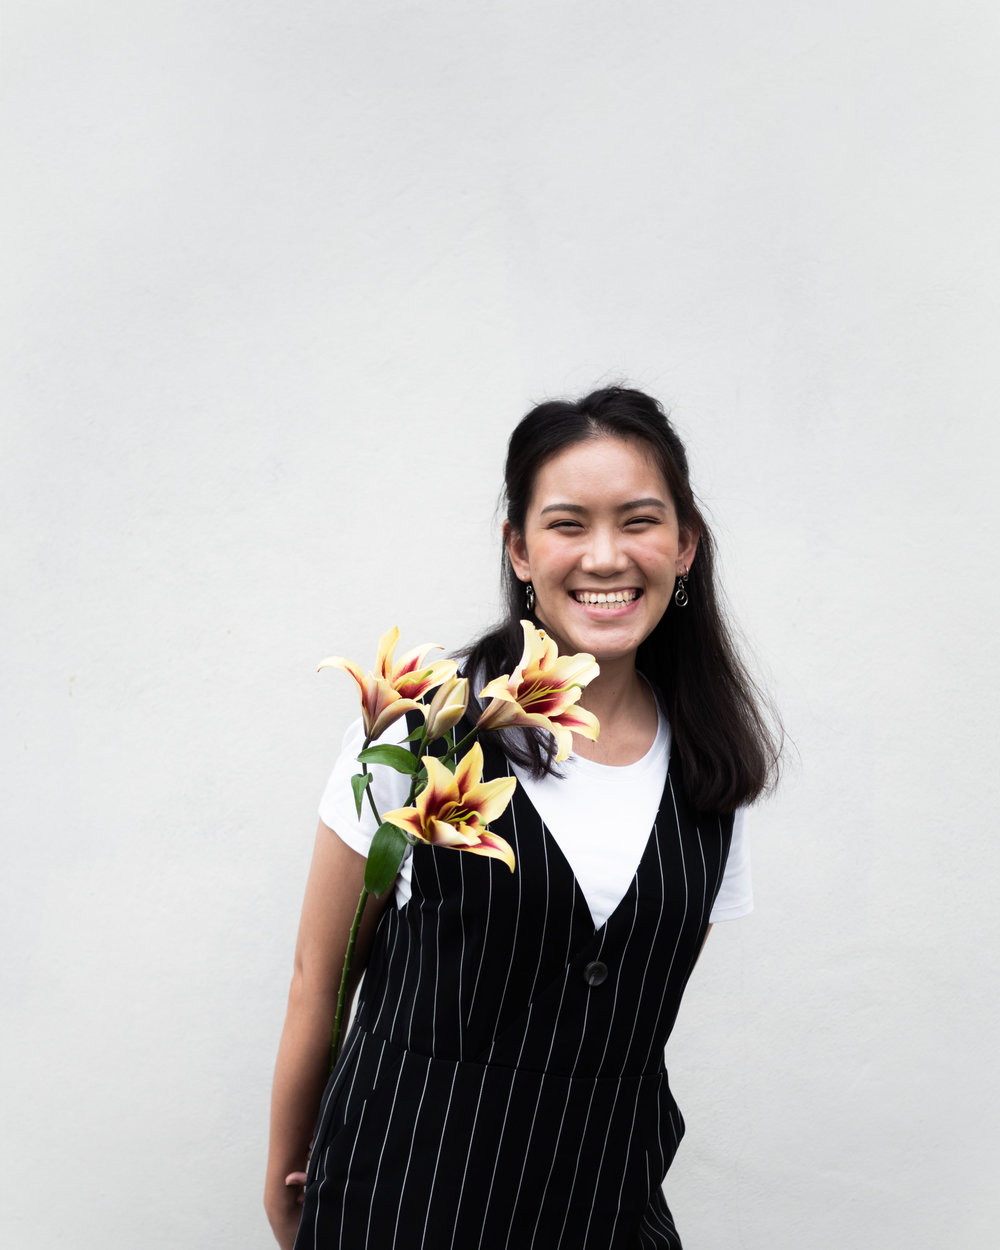 Mook, a conceptual thinker, joined PHKA back in 2016. Graduated B.Arch (Interior Architecture) at Chulalongkorn University in the same year, she started her first job here. As aforementioned, she enjoys working on projects with deeper concept and meaningful design. Her limitless energy when in charge of being a supervisor, conducting an on-site production, is largely contributed to studio's recent days.  parima@phkastudio.com